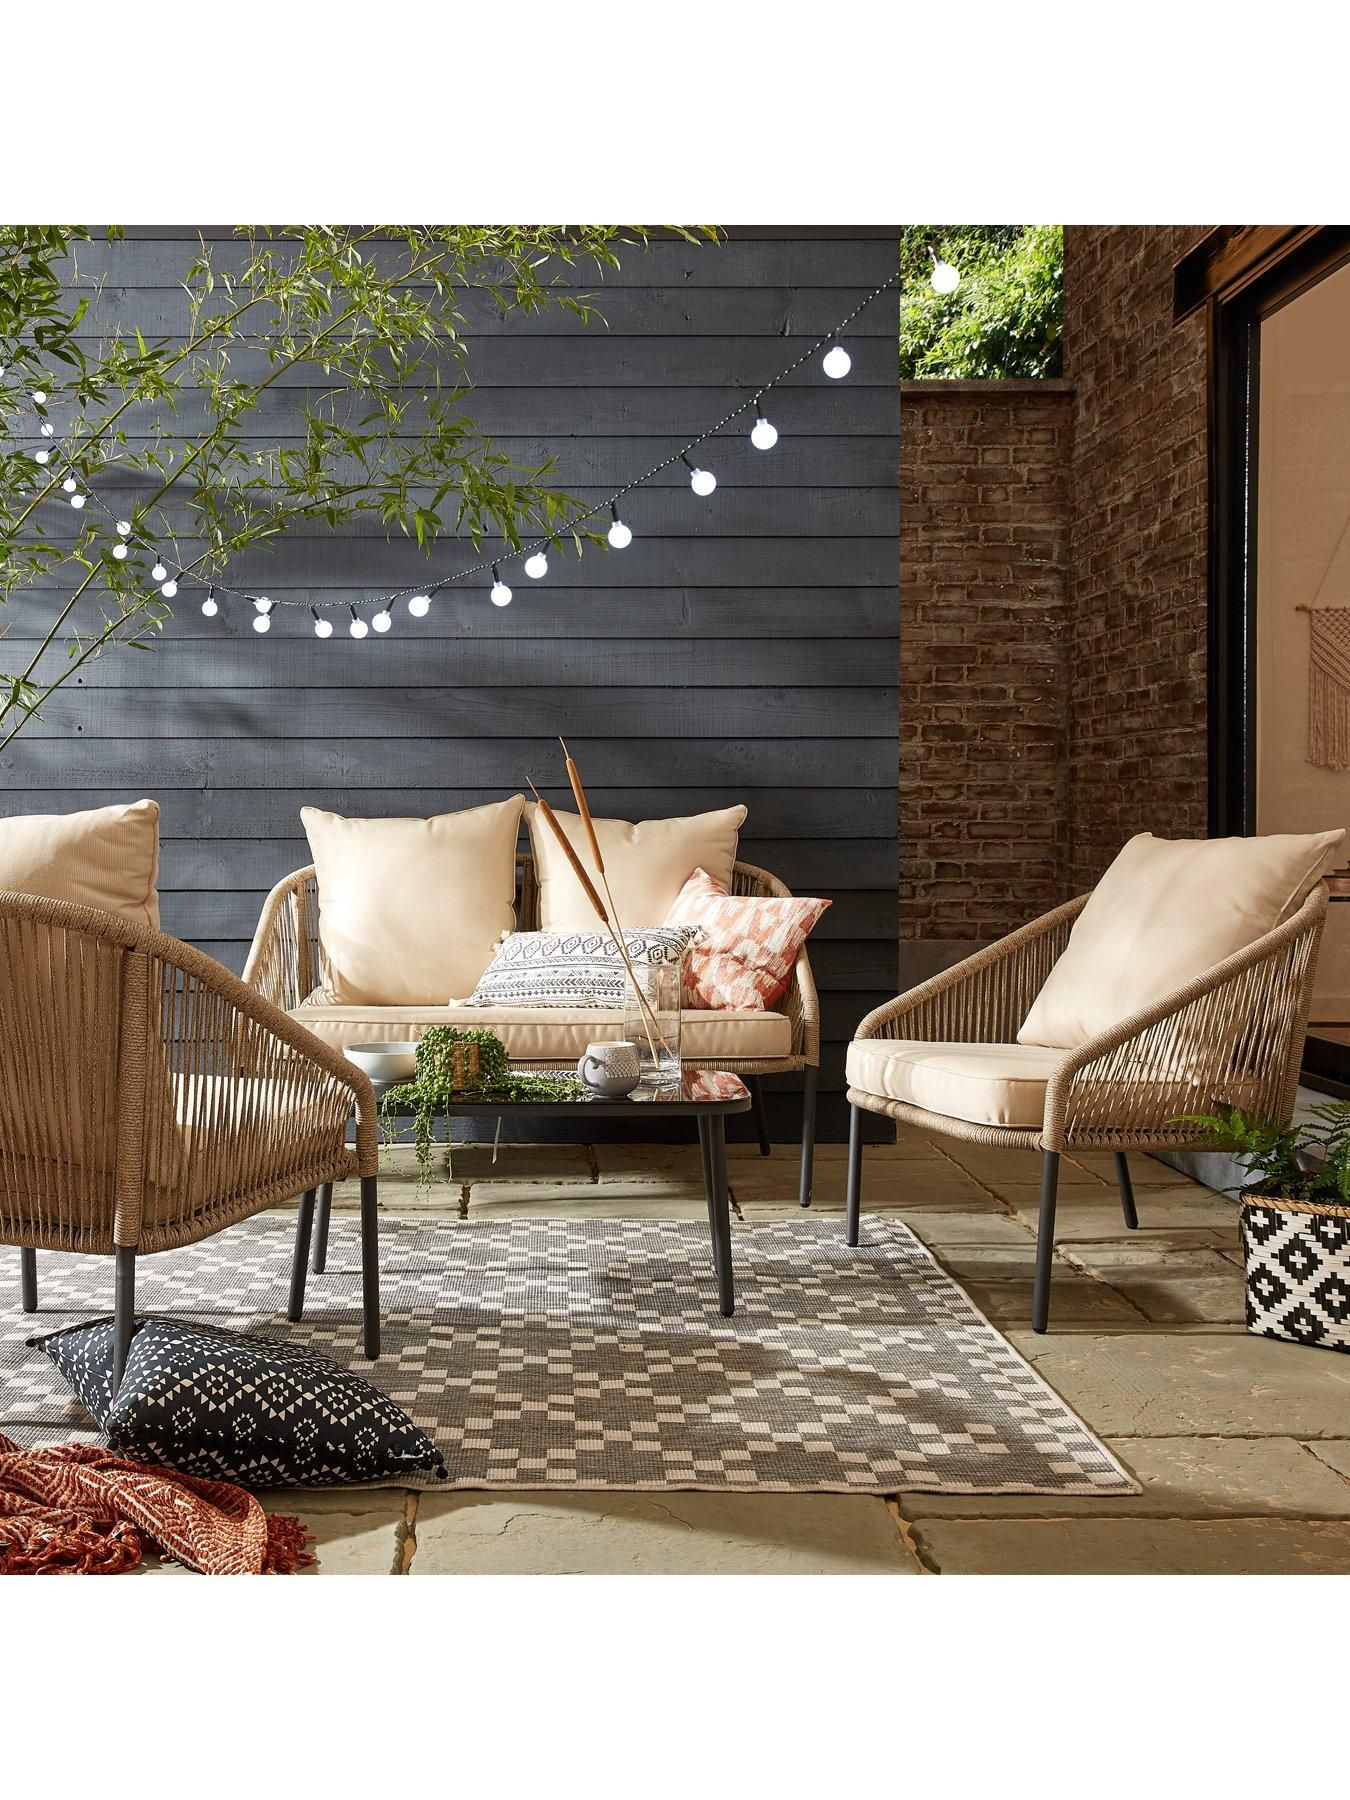 Very Womens Mens And Kids Fashion Furniture Electricals More Garden Furniture Sets Contemporary Garden Furniture Garden Furniture Uk